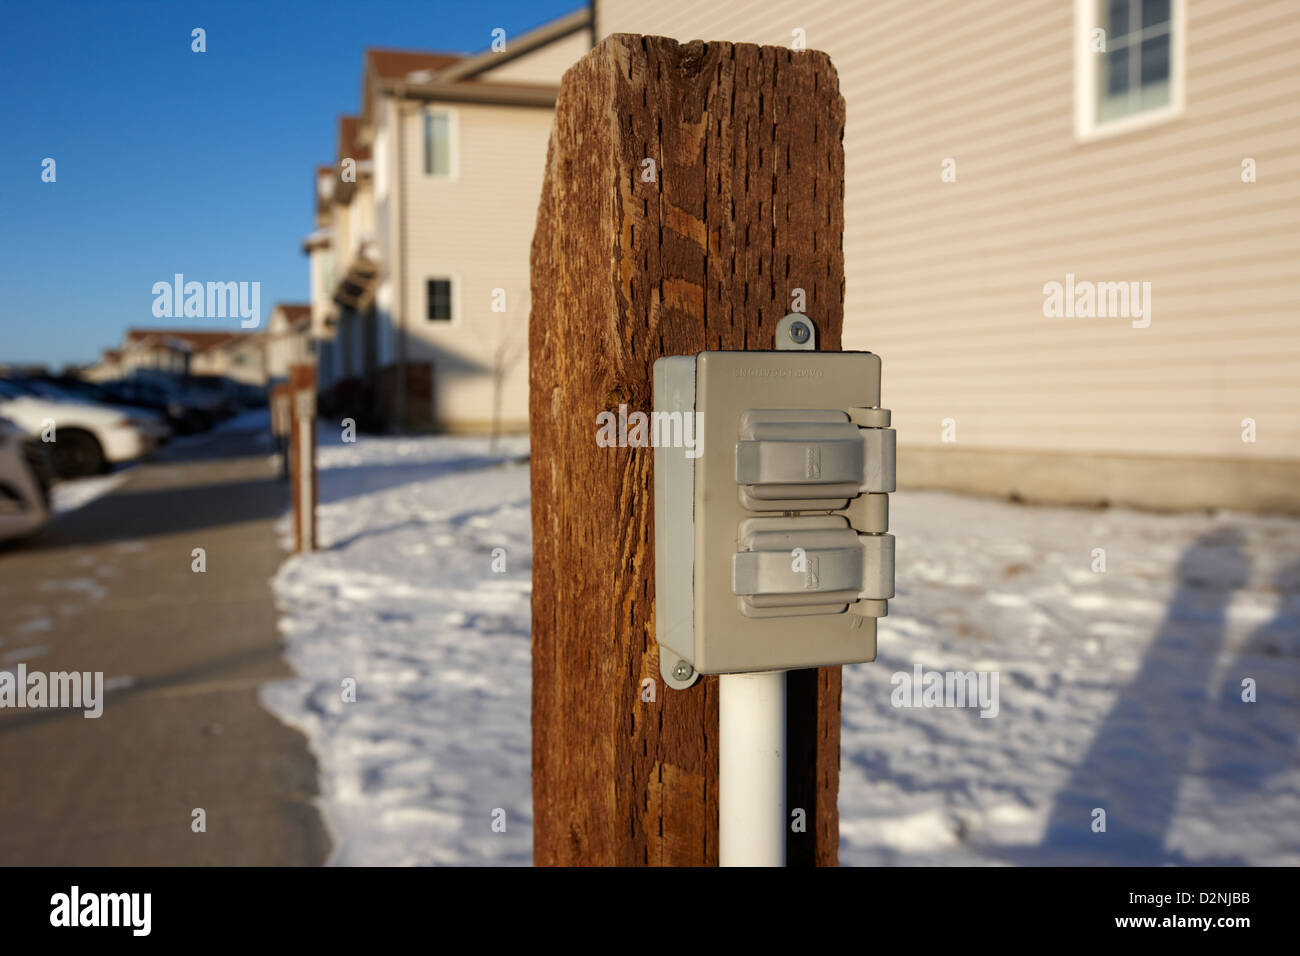 electric power connection for engine block heaters in residential parking bay outside homes in Saskatoon Saskatchewan - Stock Image